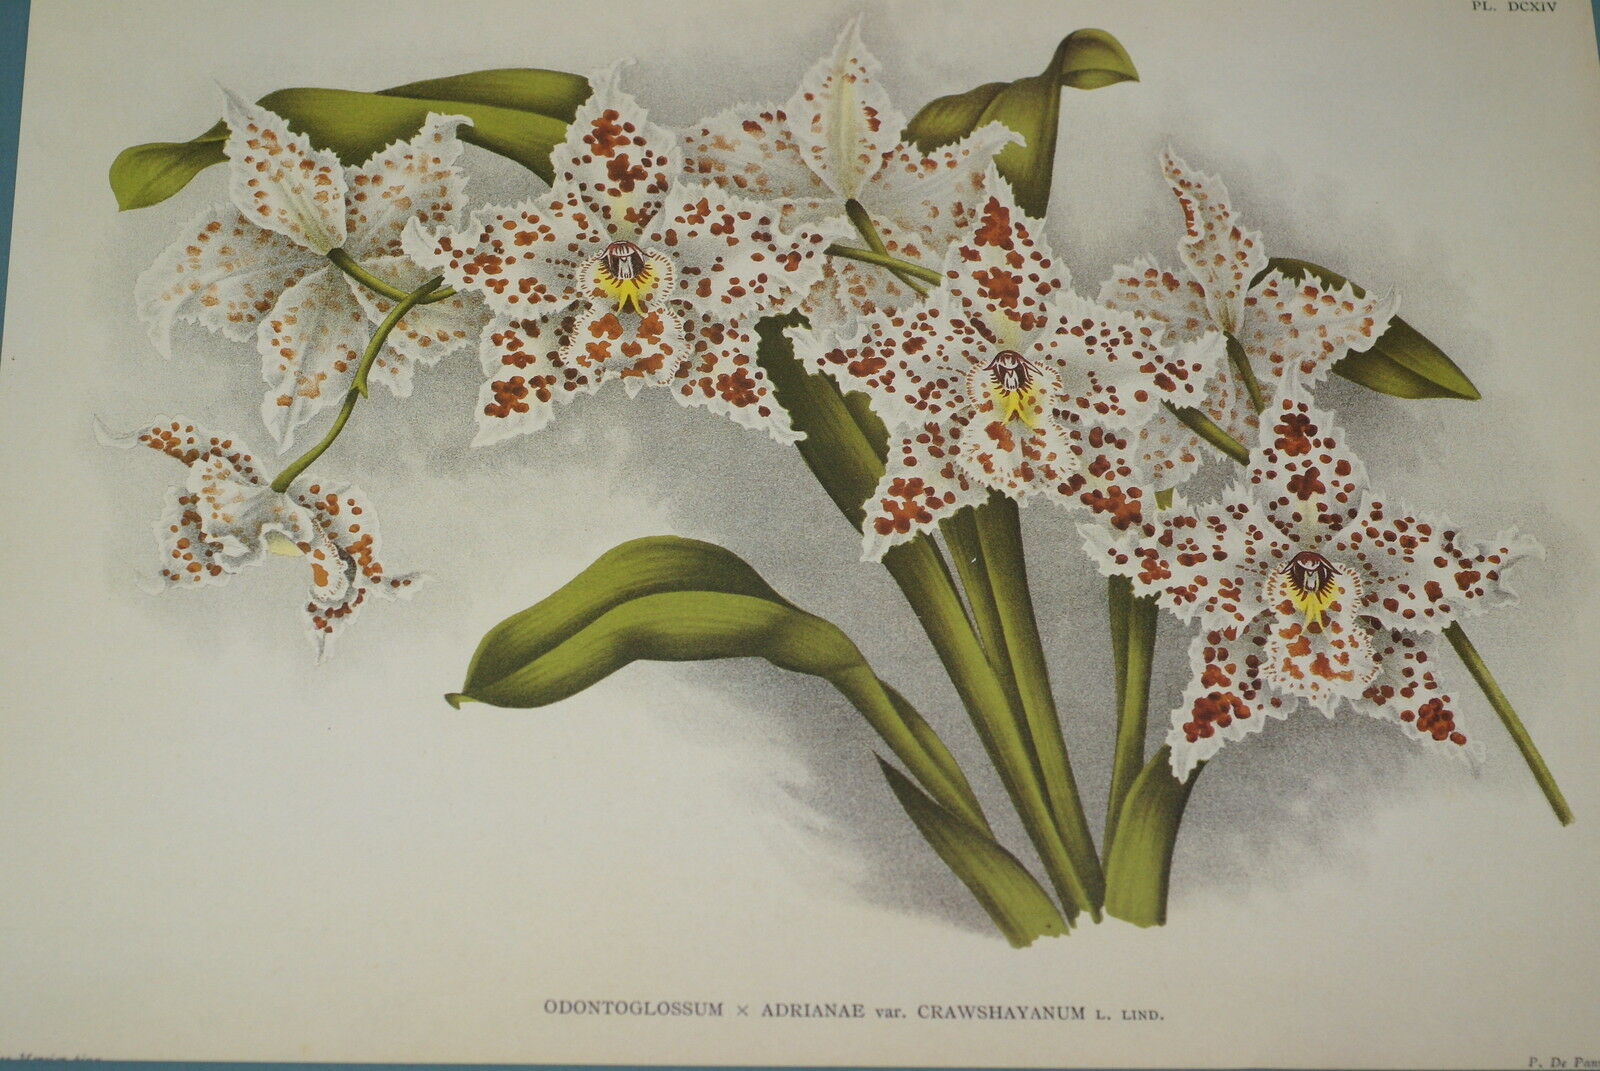 Lindenia Print Limited Edition Odontoglossum Rossi Pauwelsiae Orchid Collector -